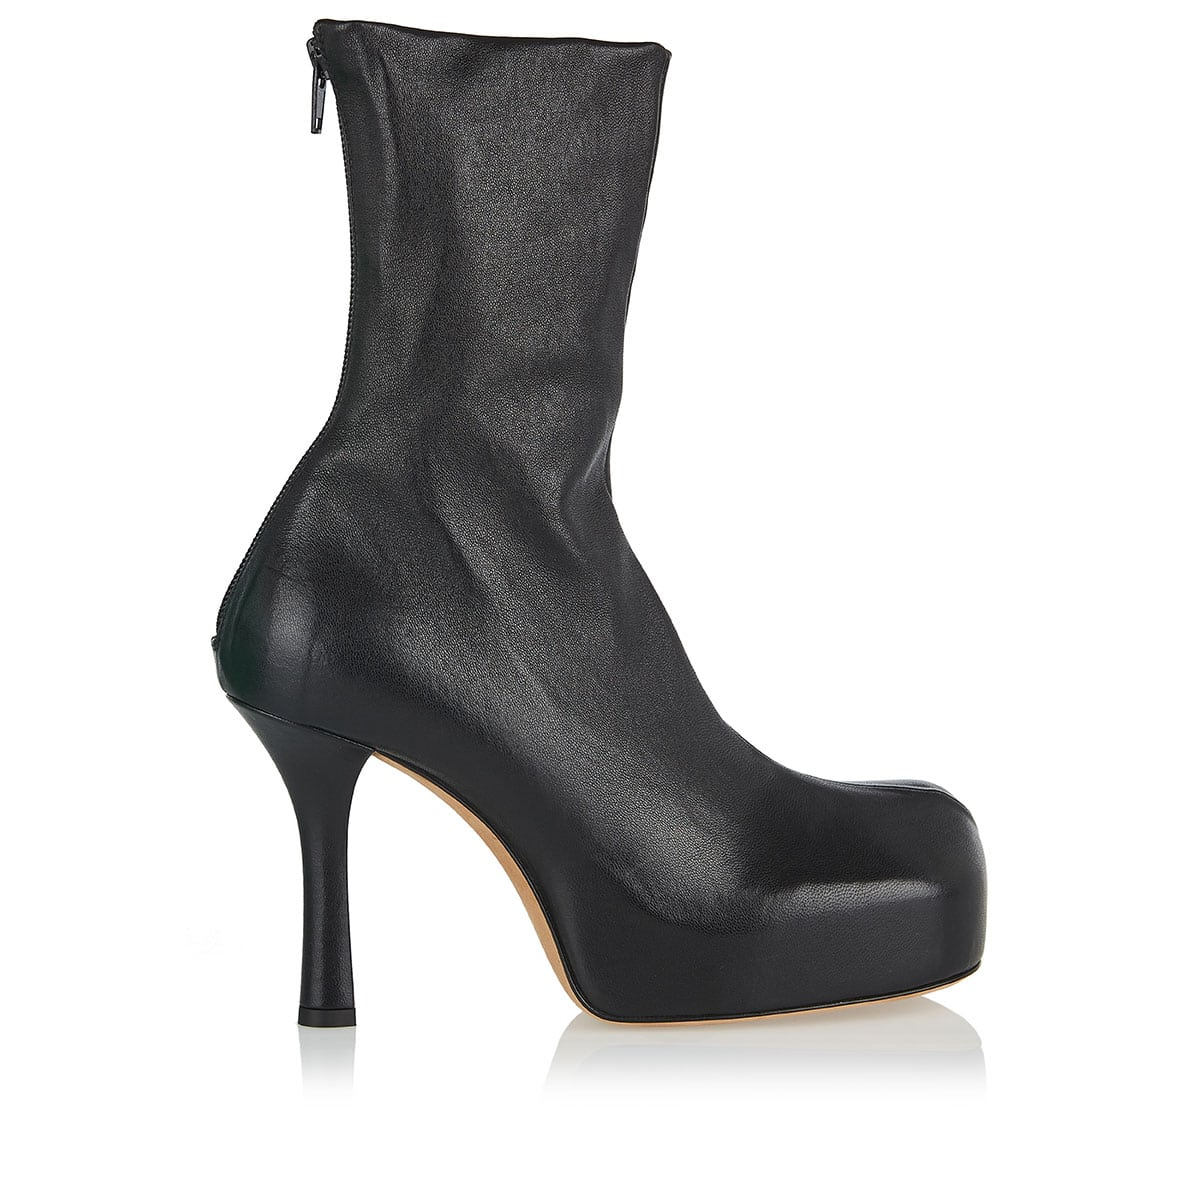 BV Bold leather booties